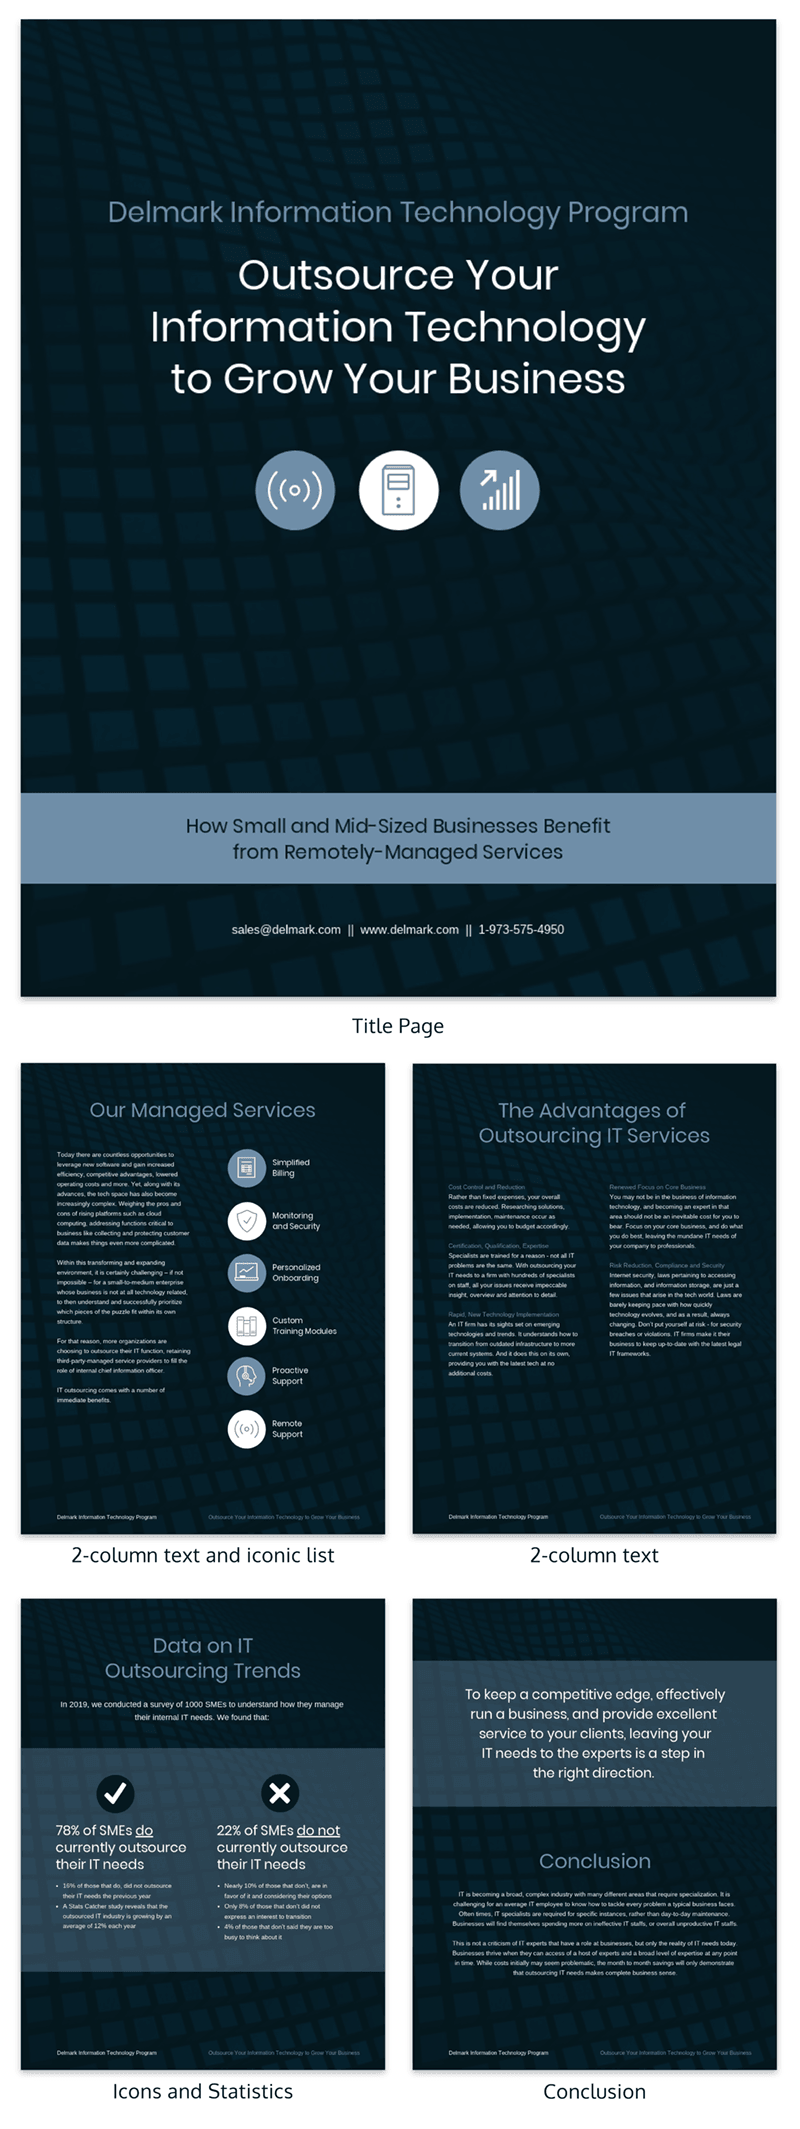 Business Information Technology White Paper Examples